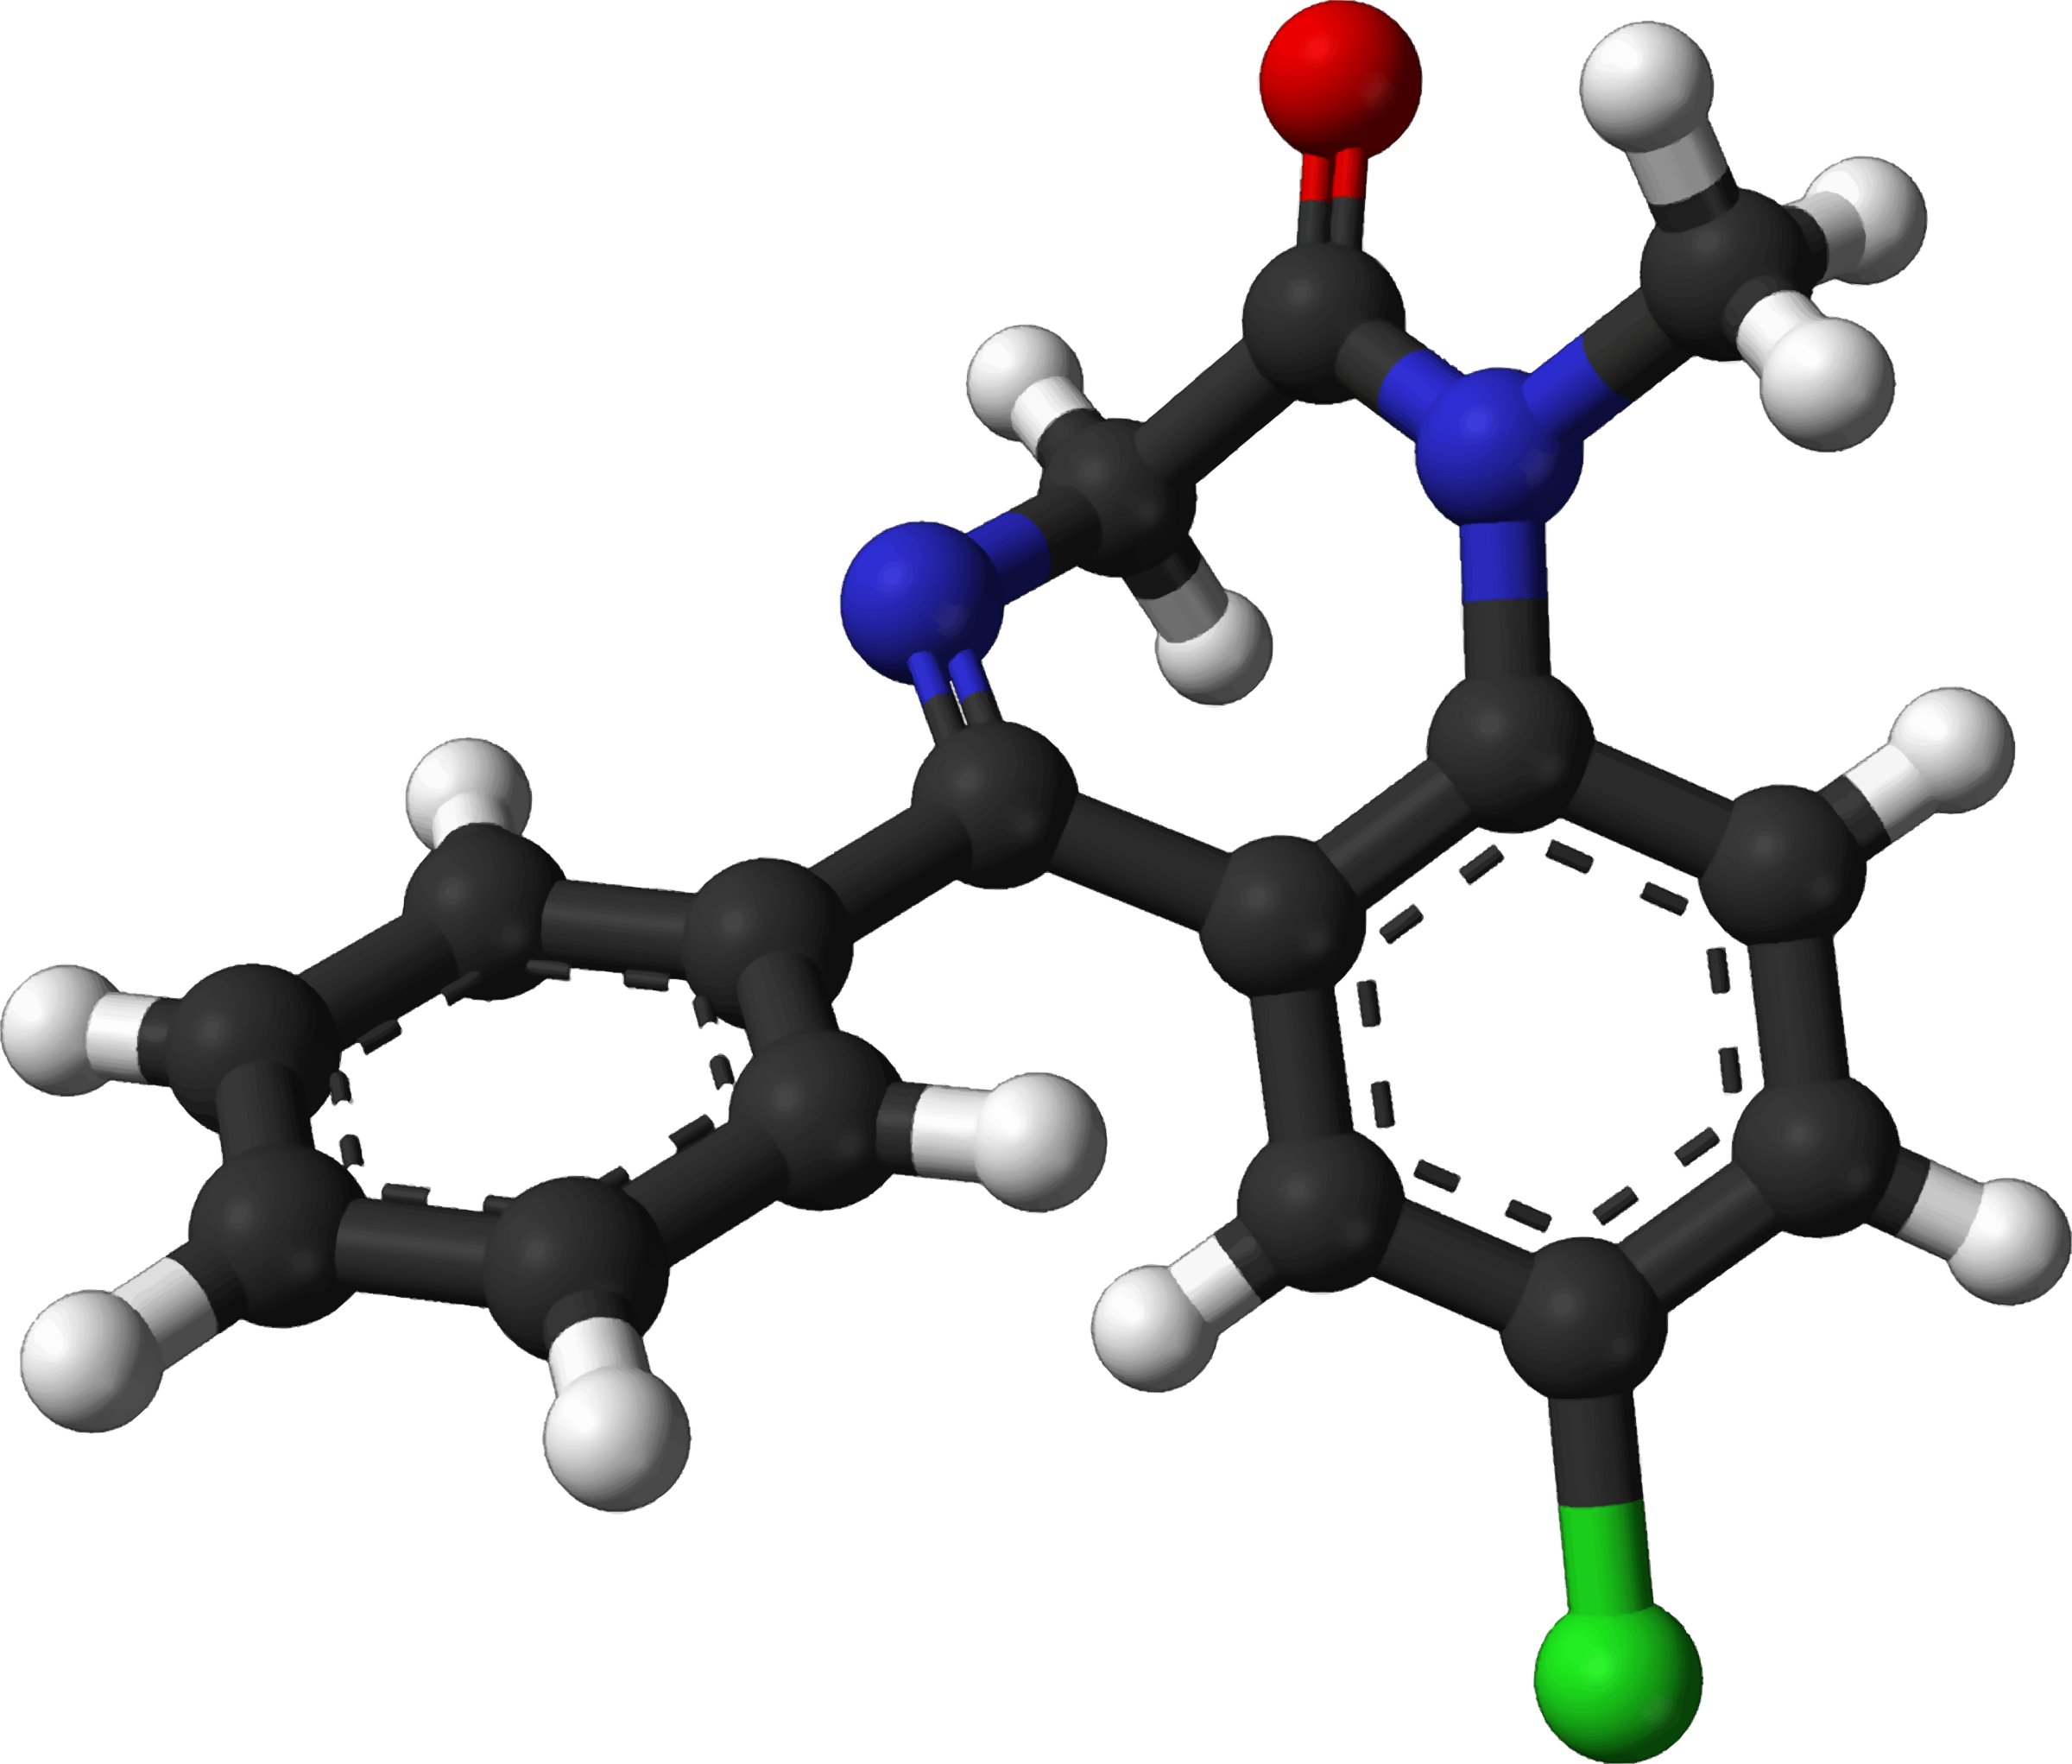 Famous (and infamous) molecules 8 - diazepam by Firkin